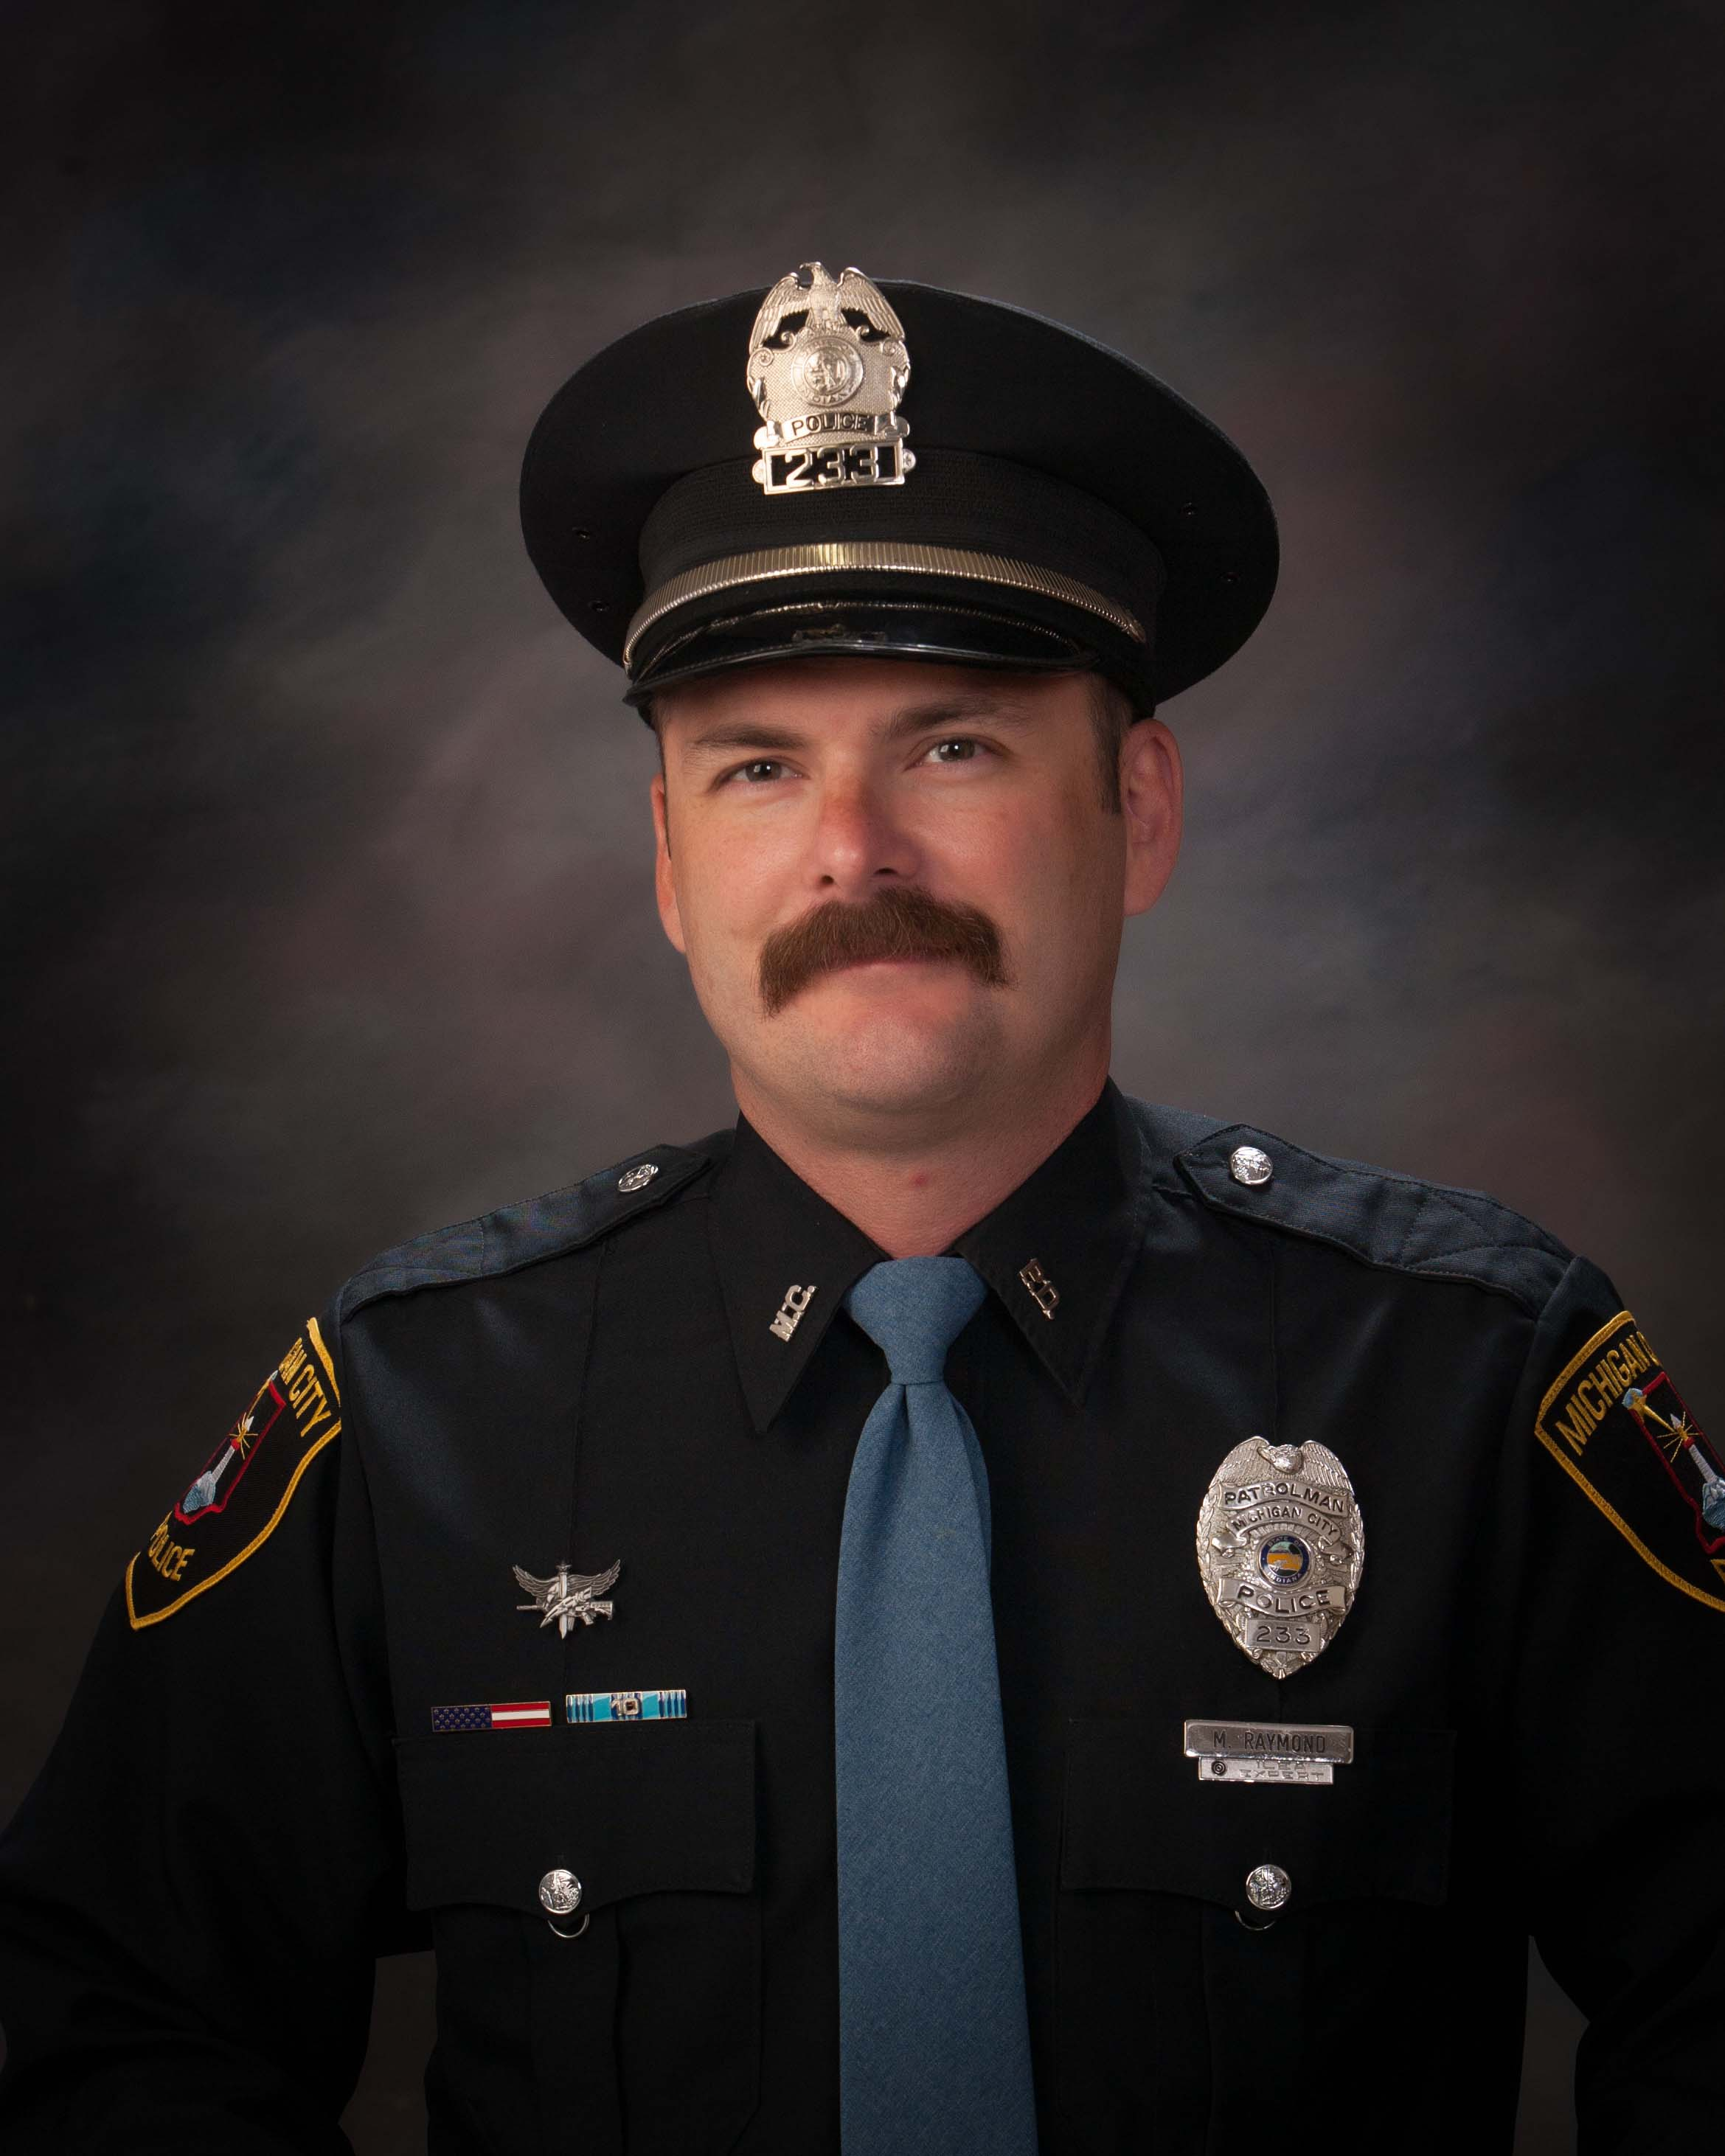 Officer Mark Raymond